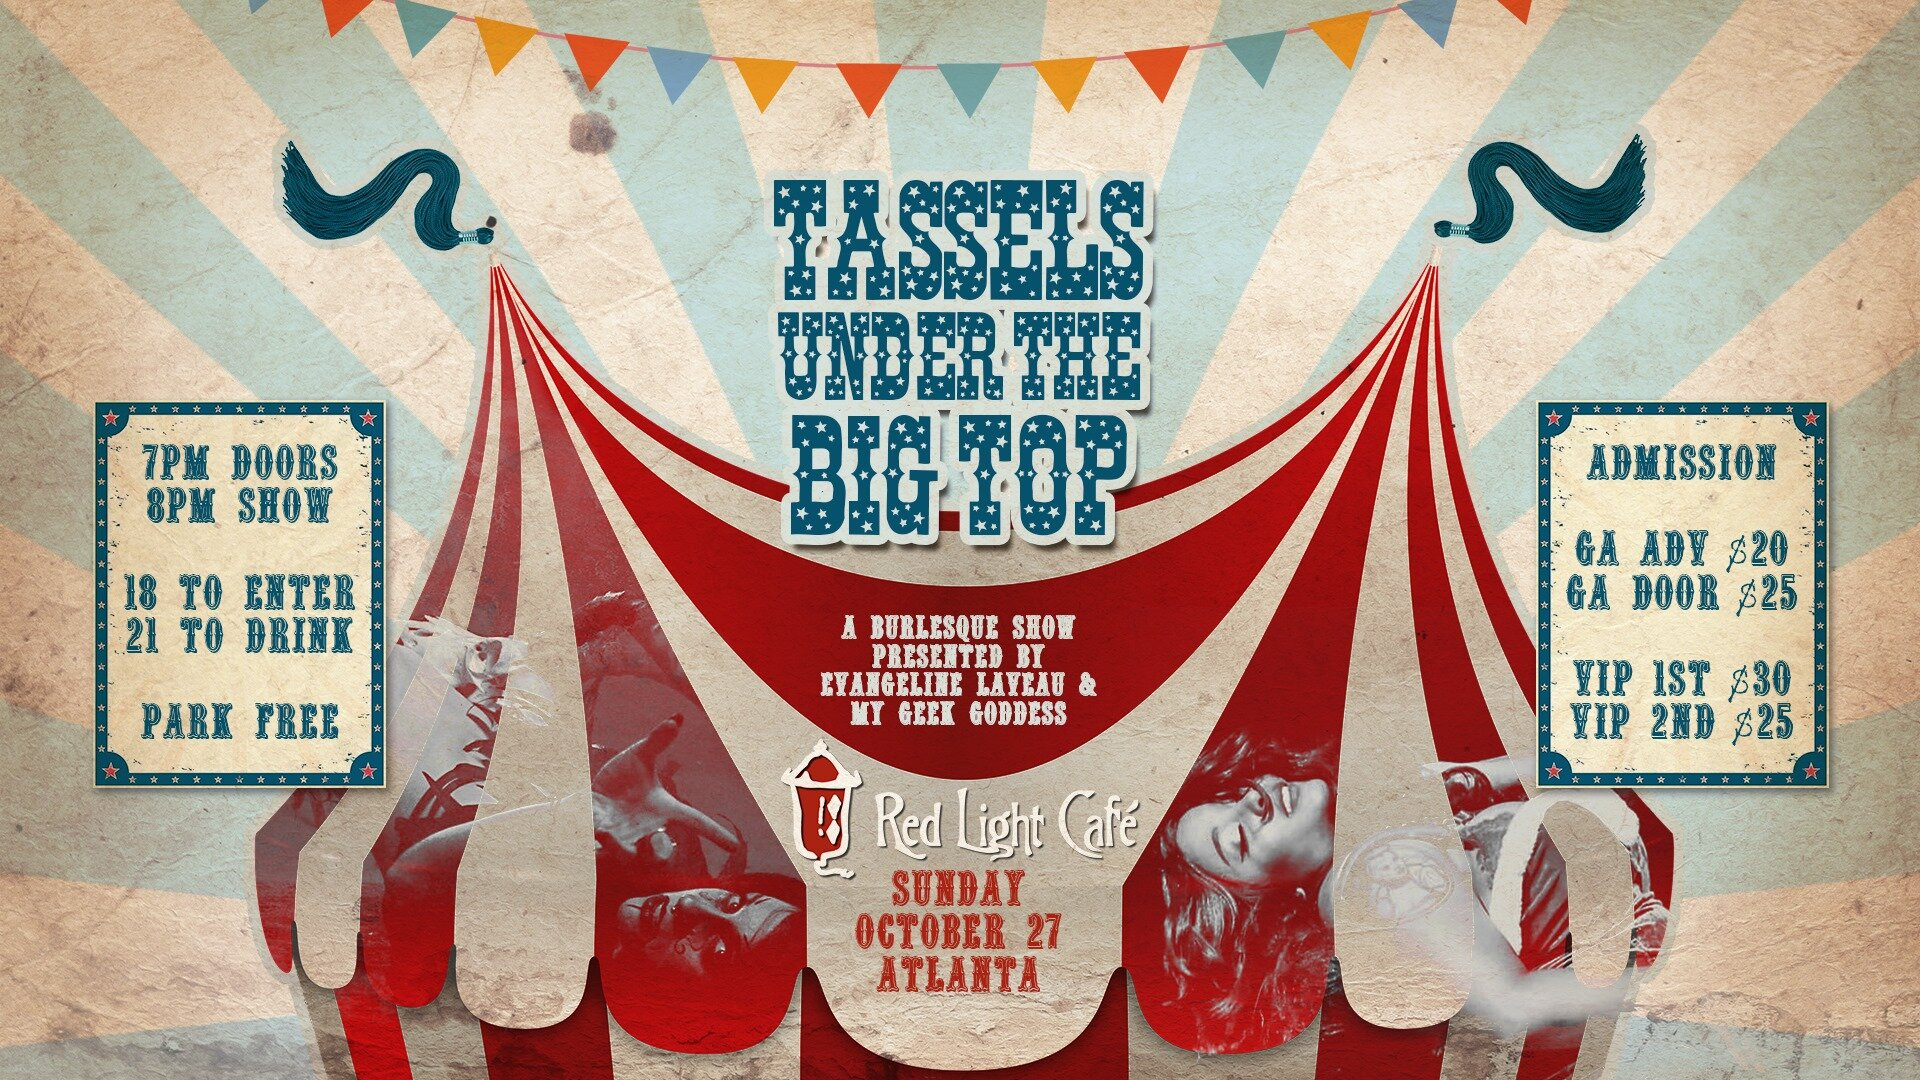 Tassels Under The Big Top: Burlesque Variety Show — October 27, 2019 — Red Light Café, Atlanta, GA